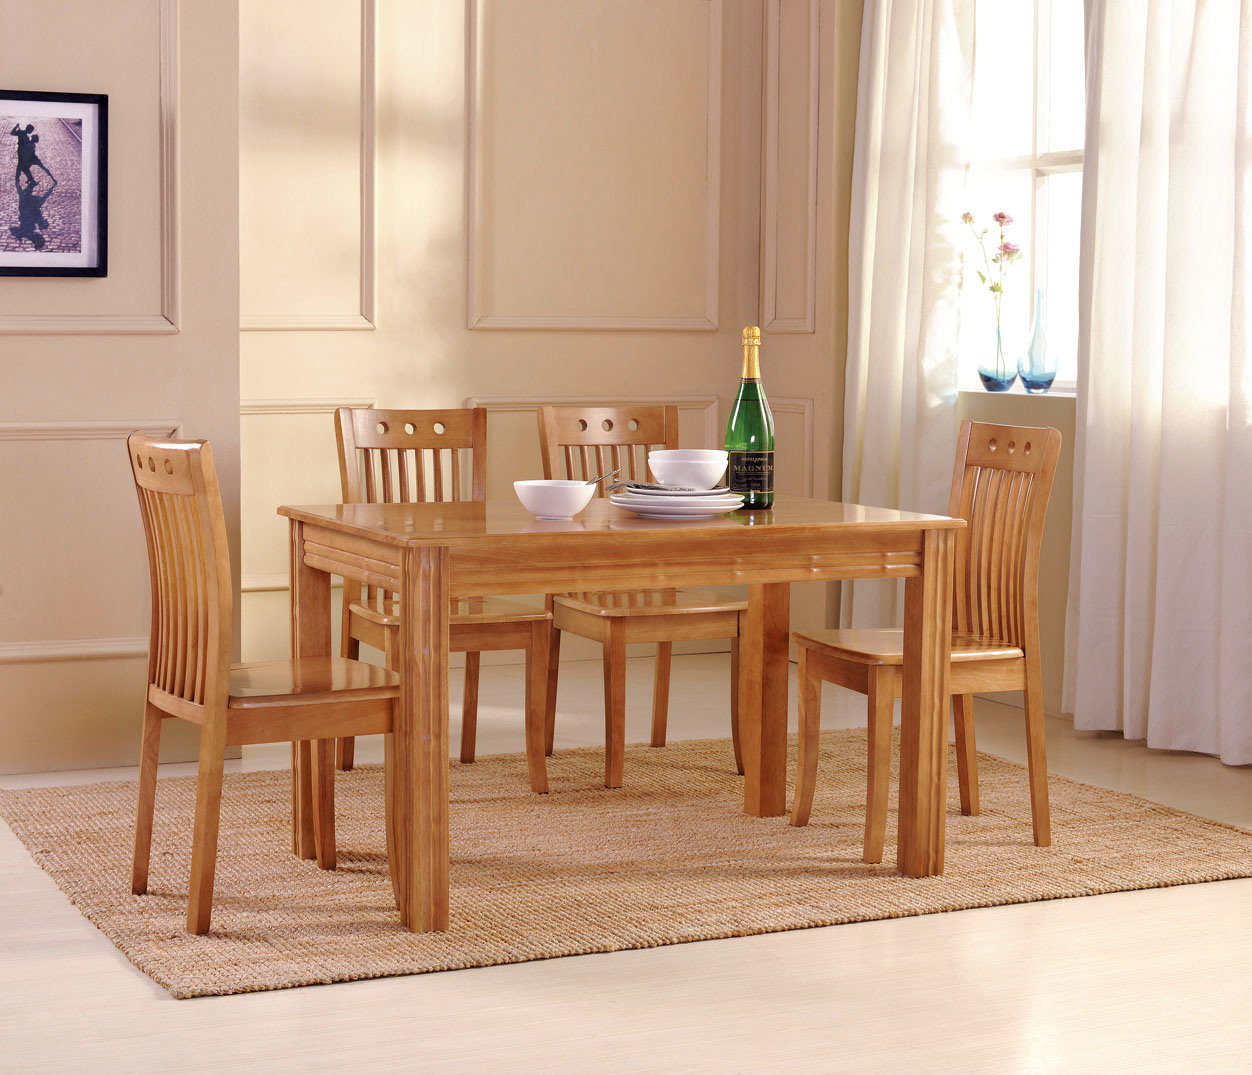 Tabla de cena silla muebles de madera muebles del for Table design sample